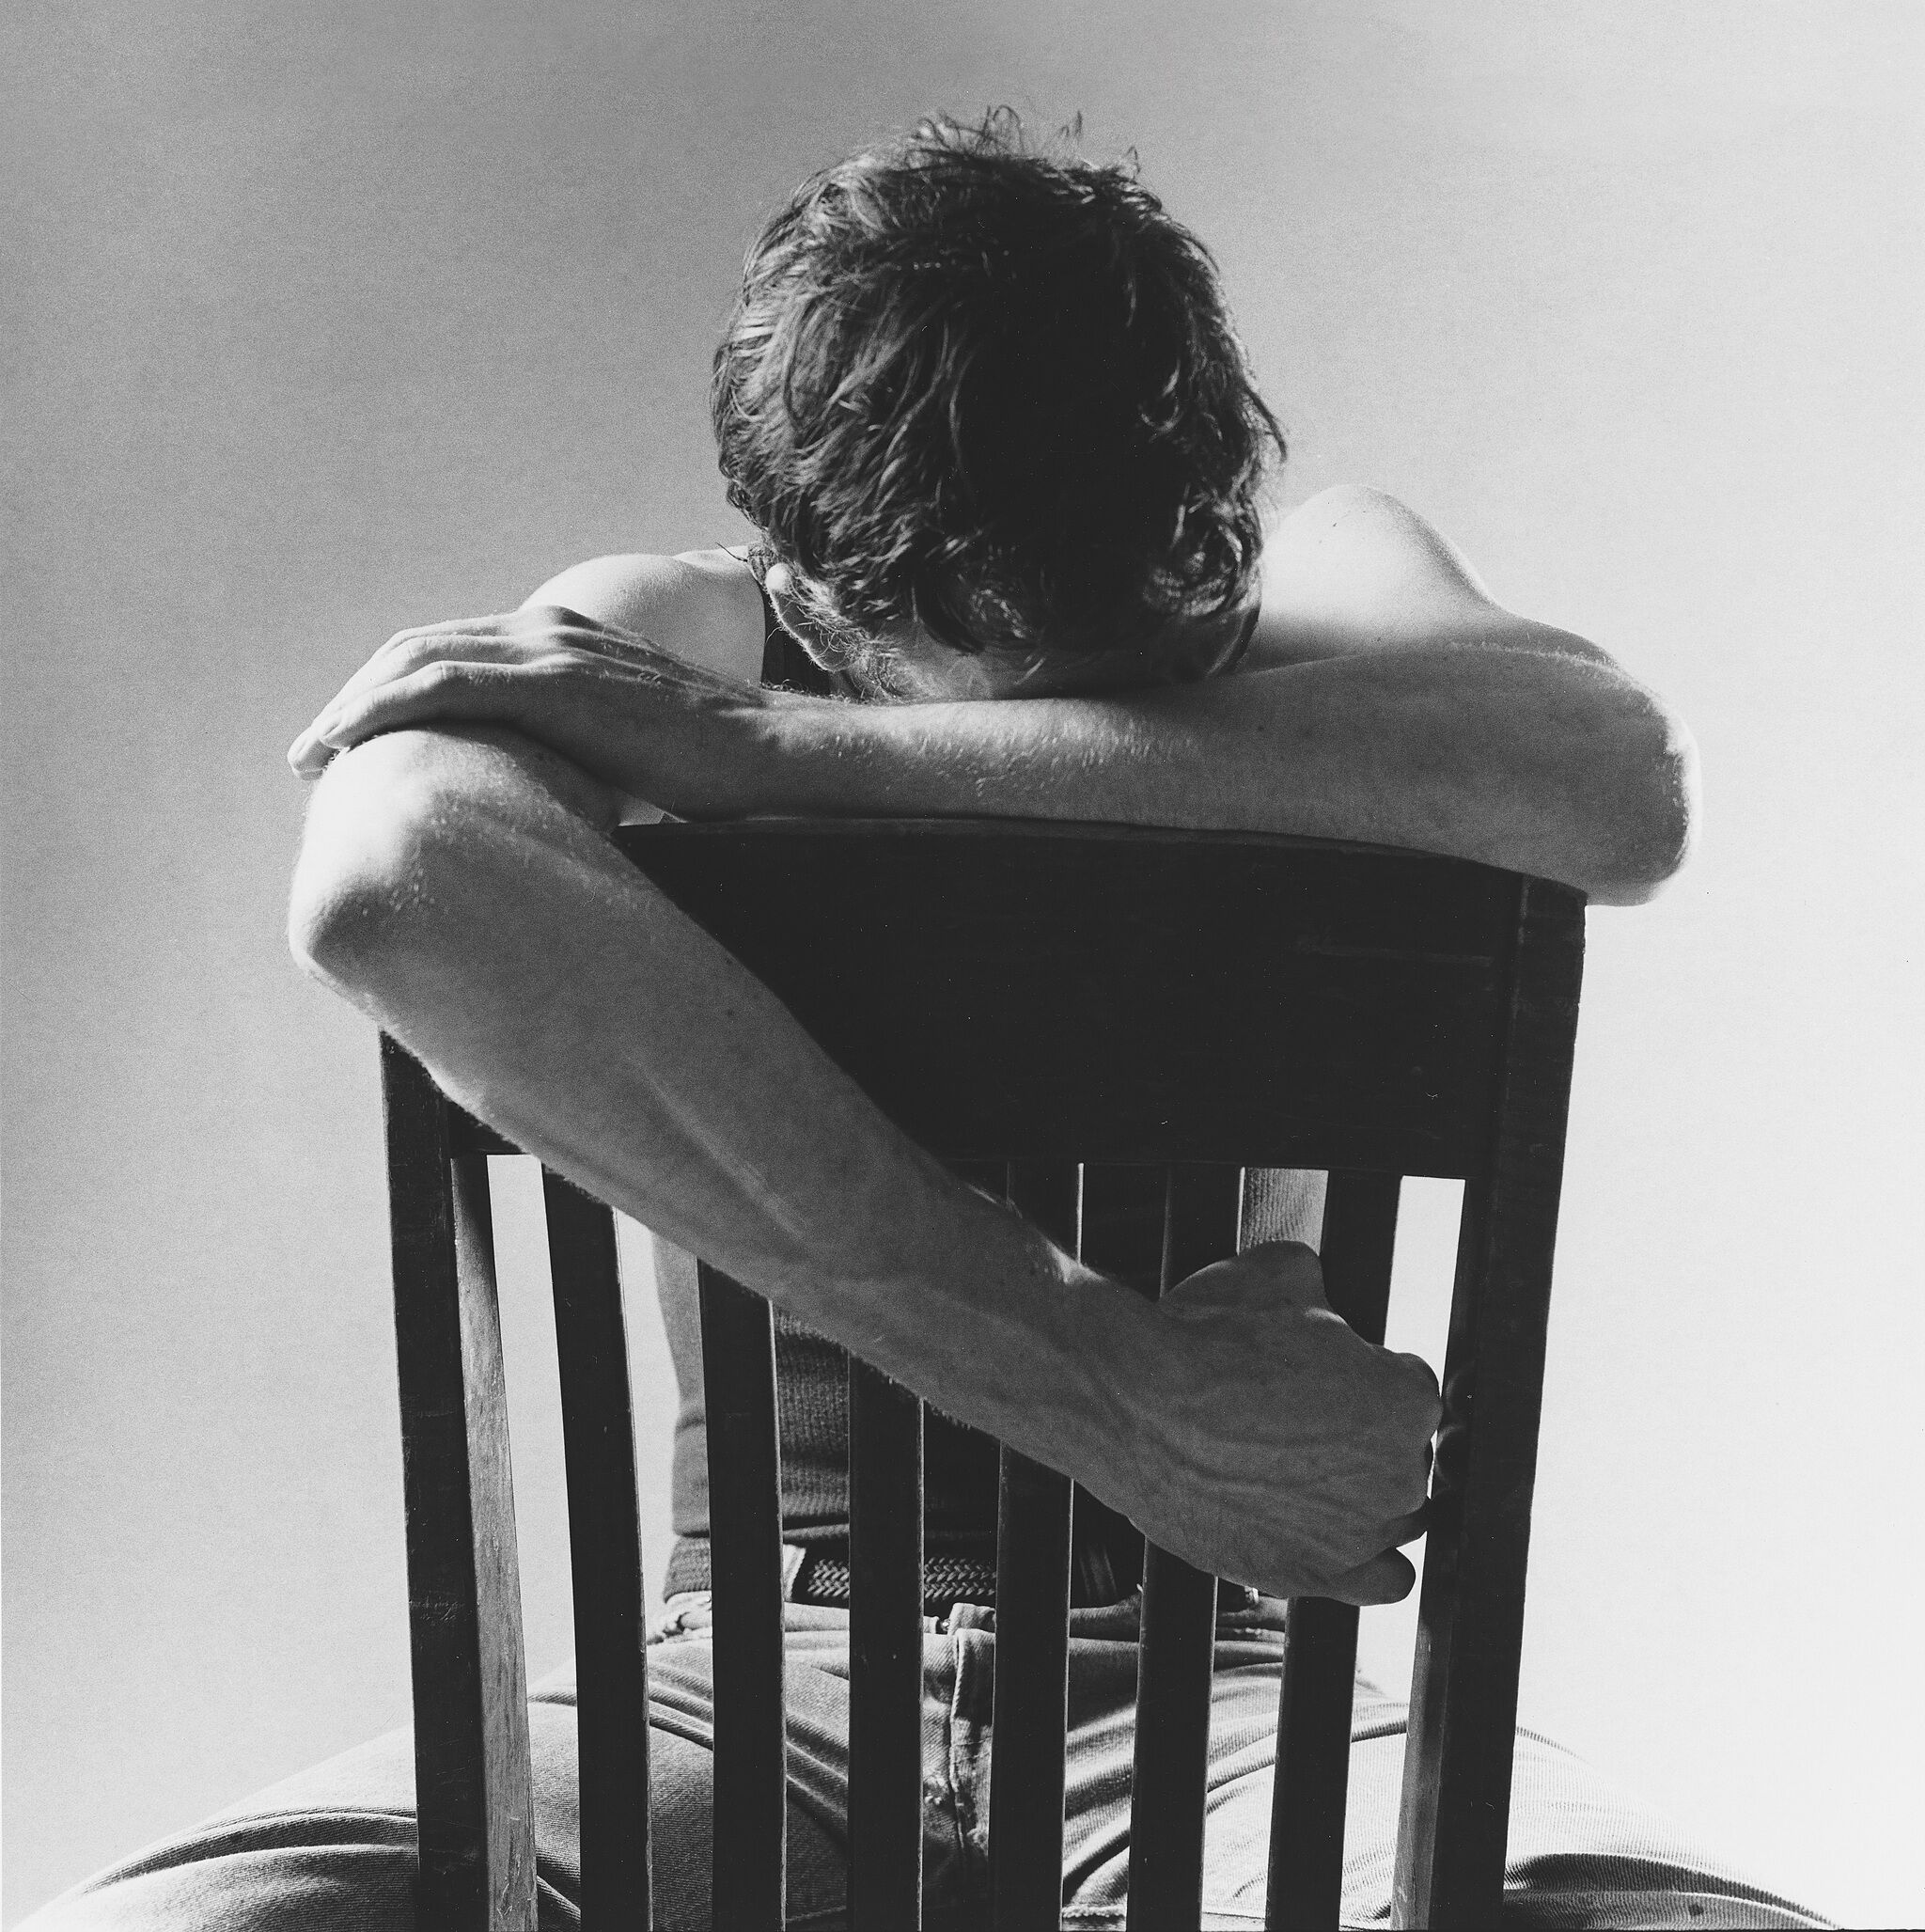 David Wojnarowicz sitting backwards on a chair.